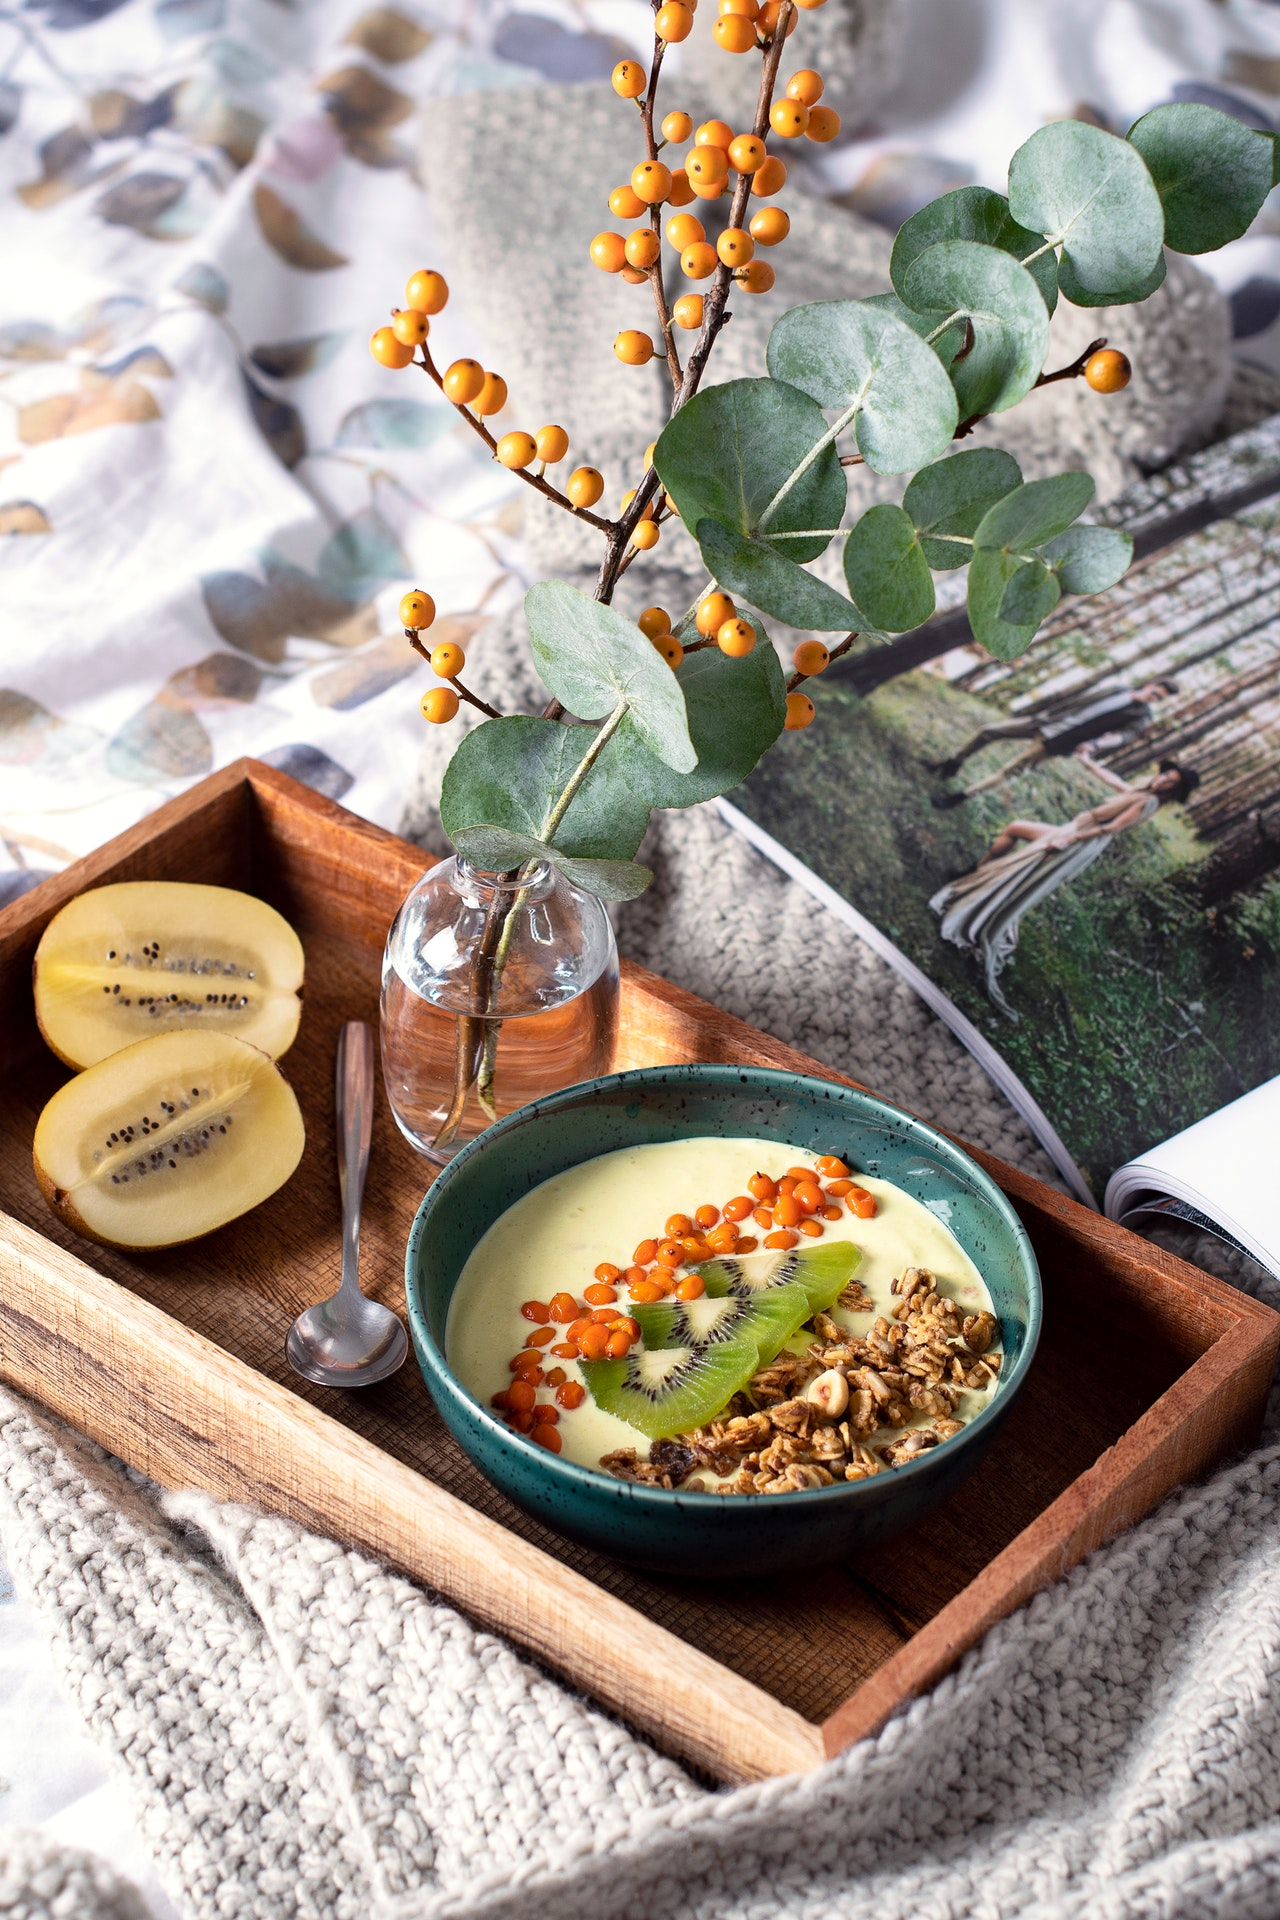 Healthy, warming breakfast is the best start of the day.